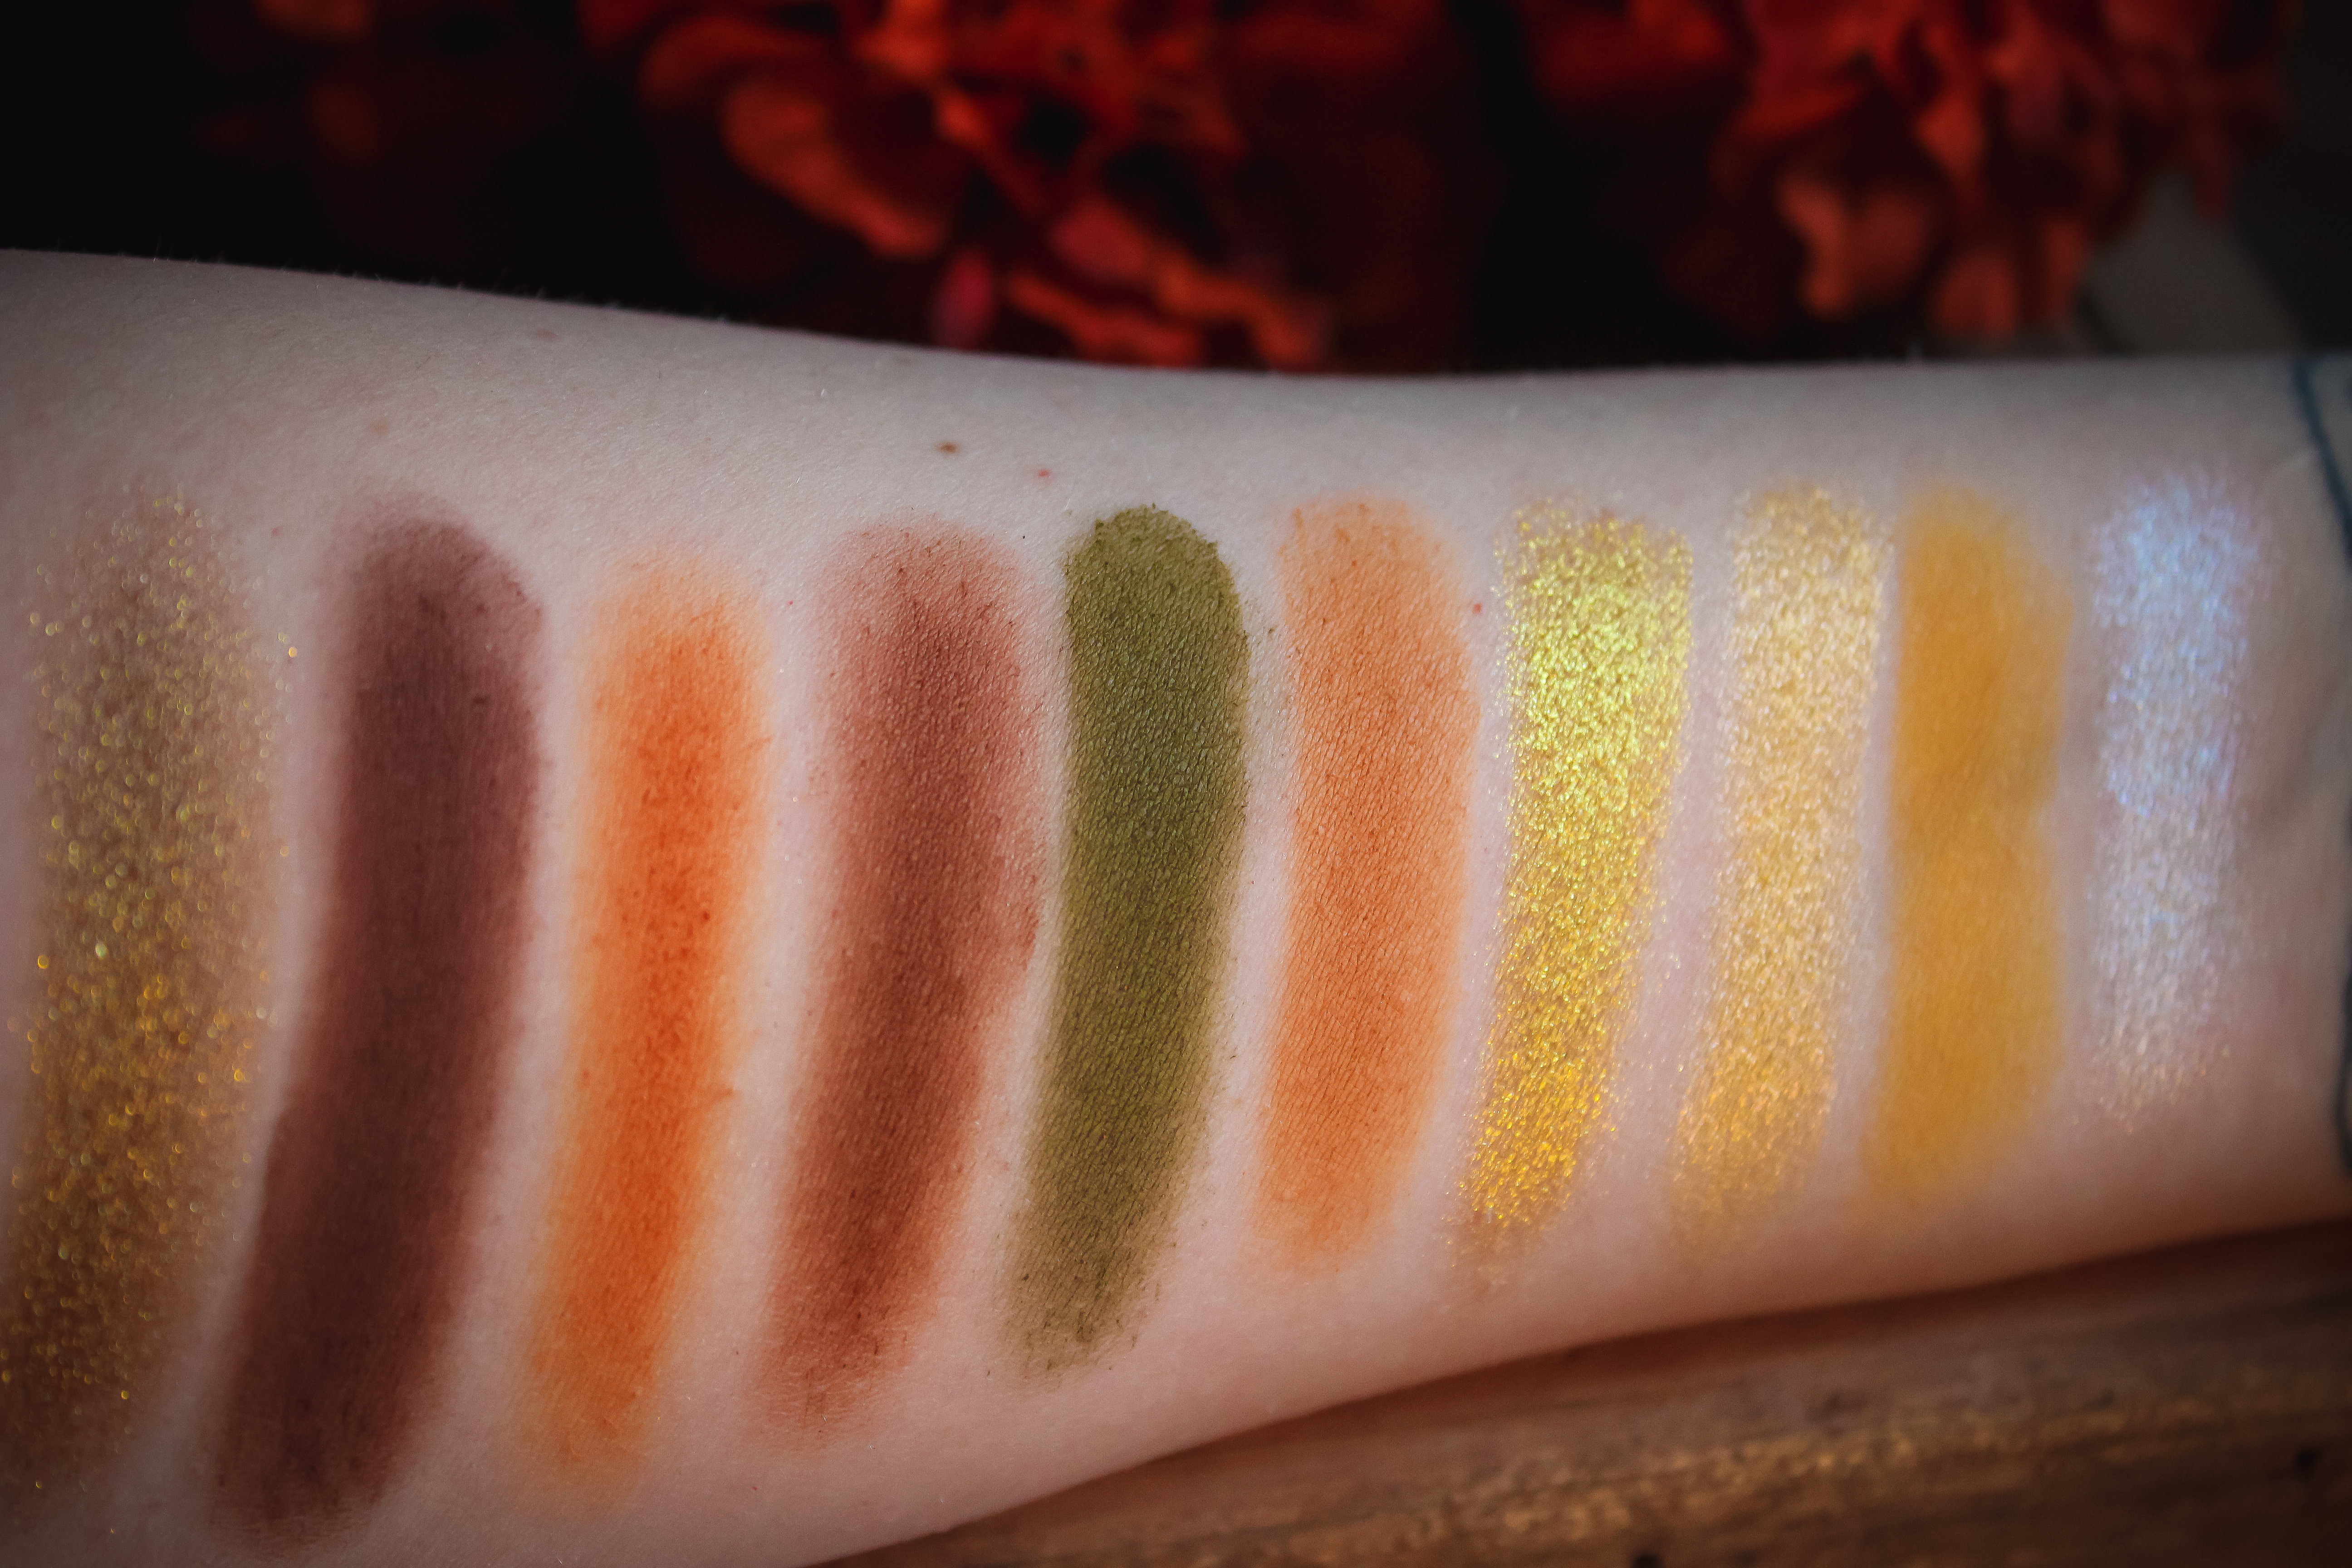 Morphe x Jaclyn Hill Armed and Gorgeous Palette Swatches